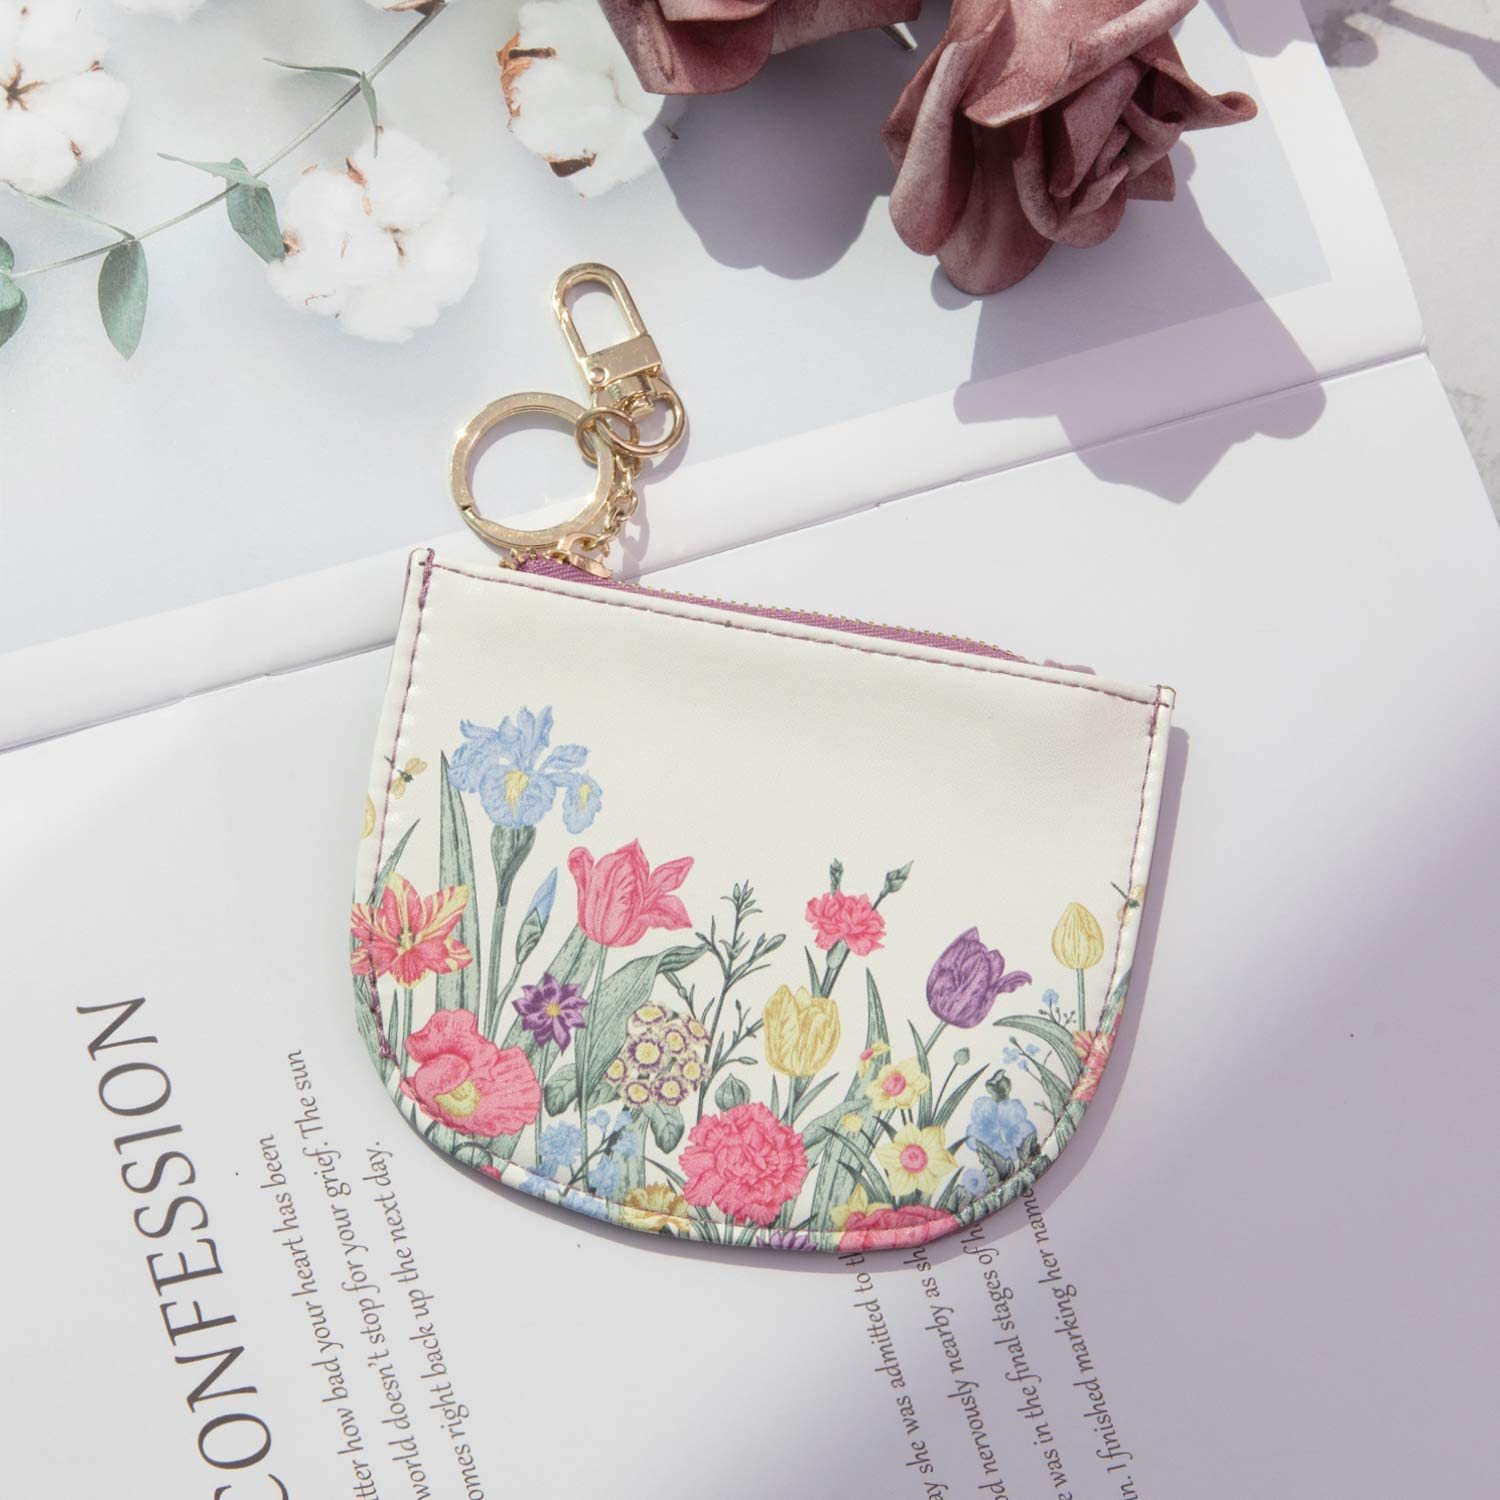 Rose Lake Coin Purse Change Card Case Wallet With Keychain Soft Leather Mini Zipper Pouch Women Girls Gift